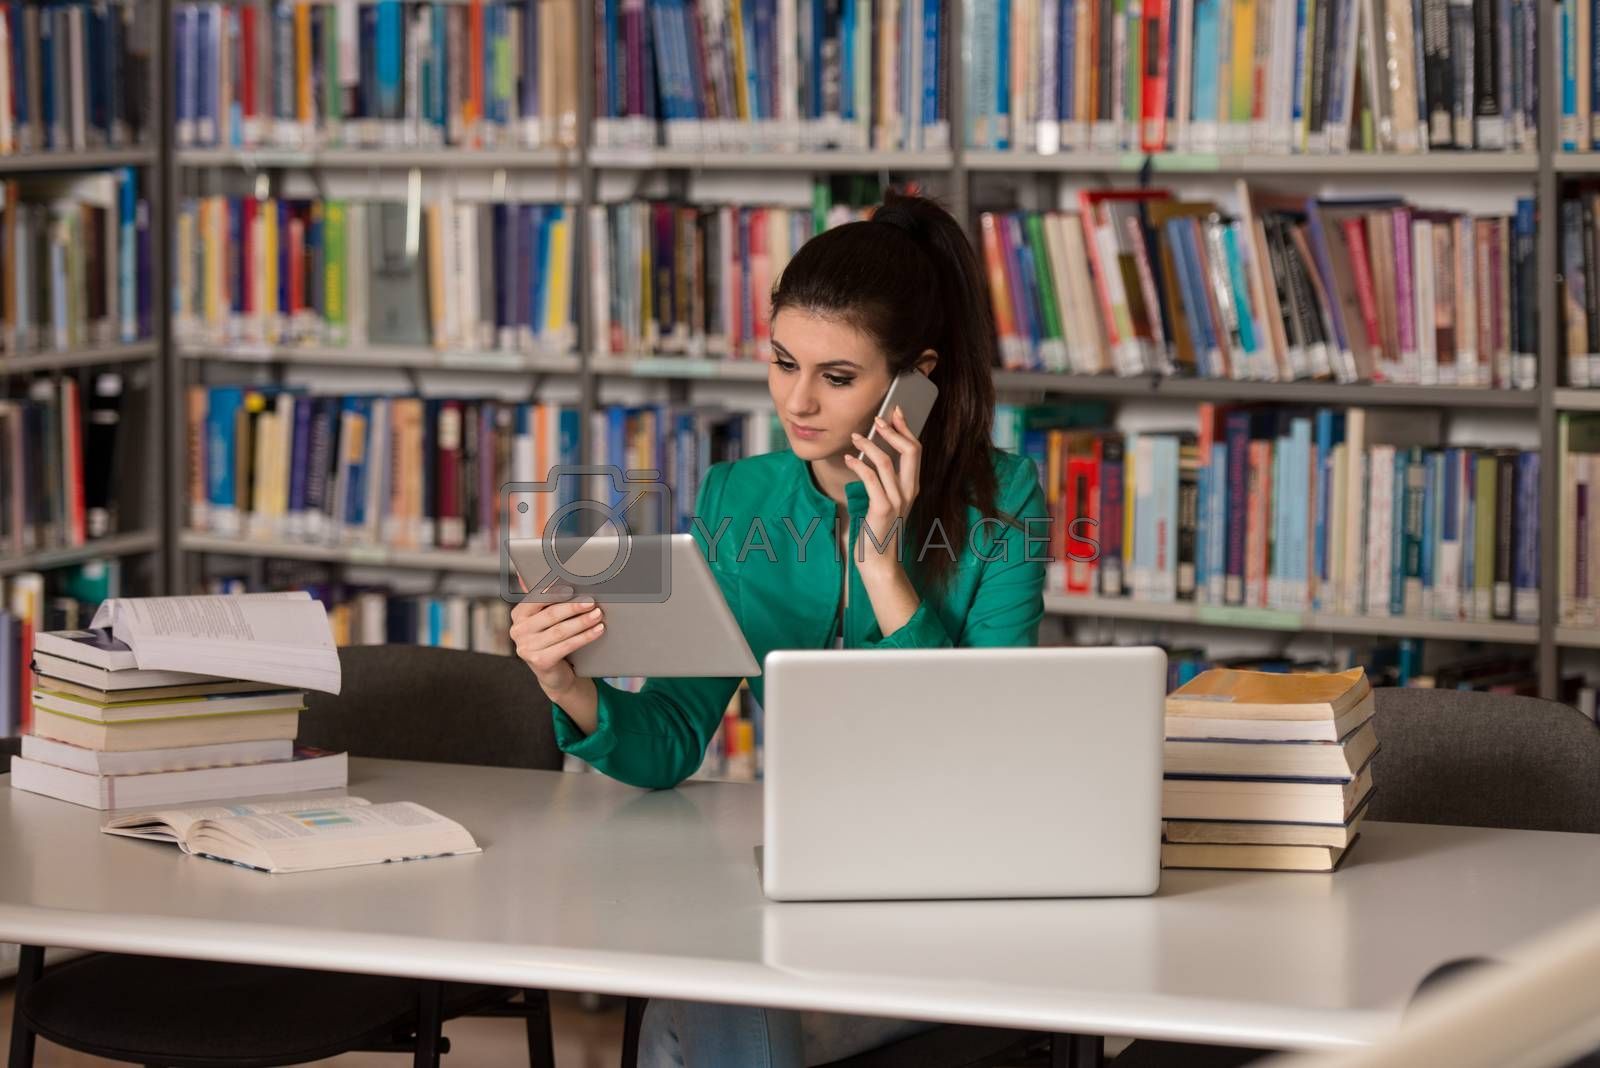 Female Student Talking On The Phone In Library - Shallow Depth Of Field